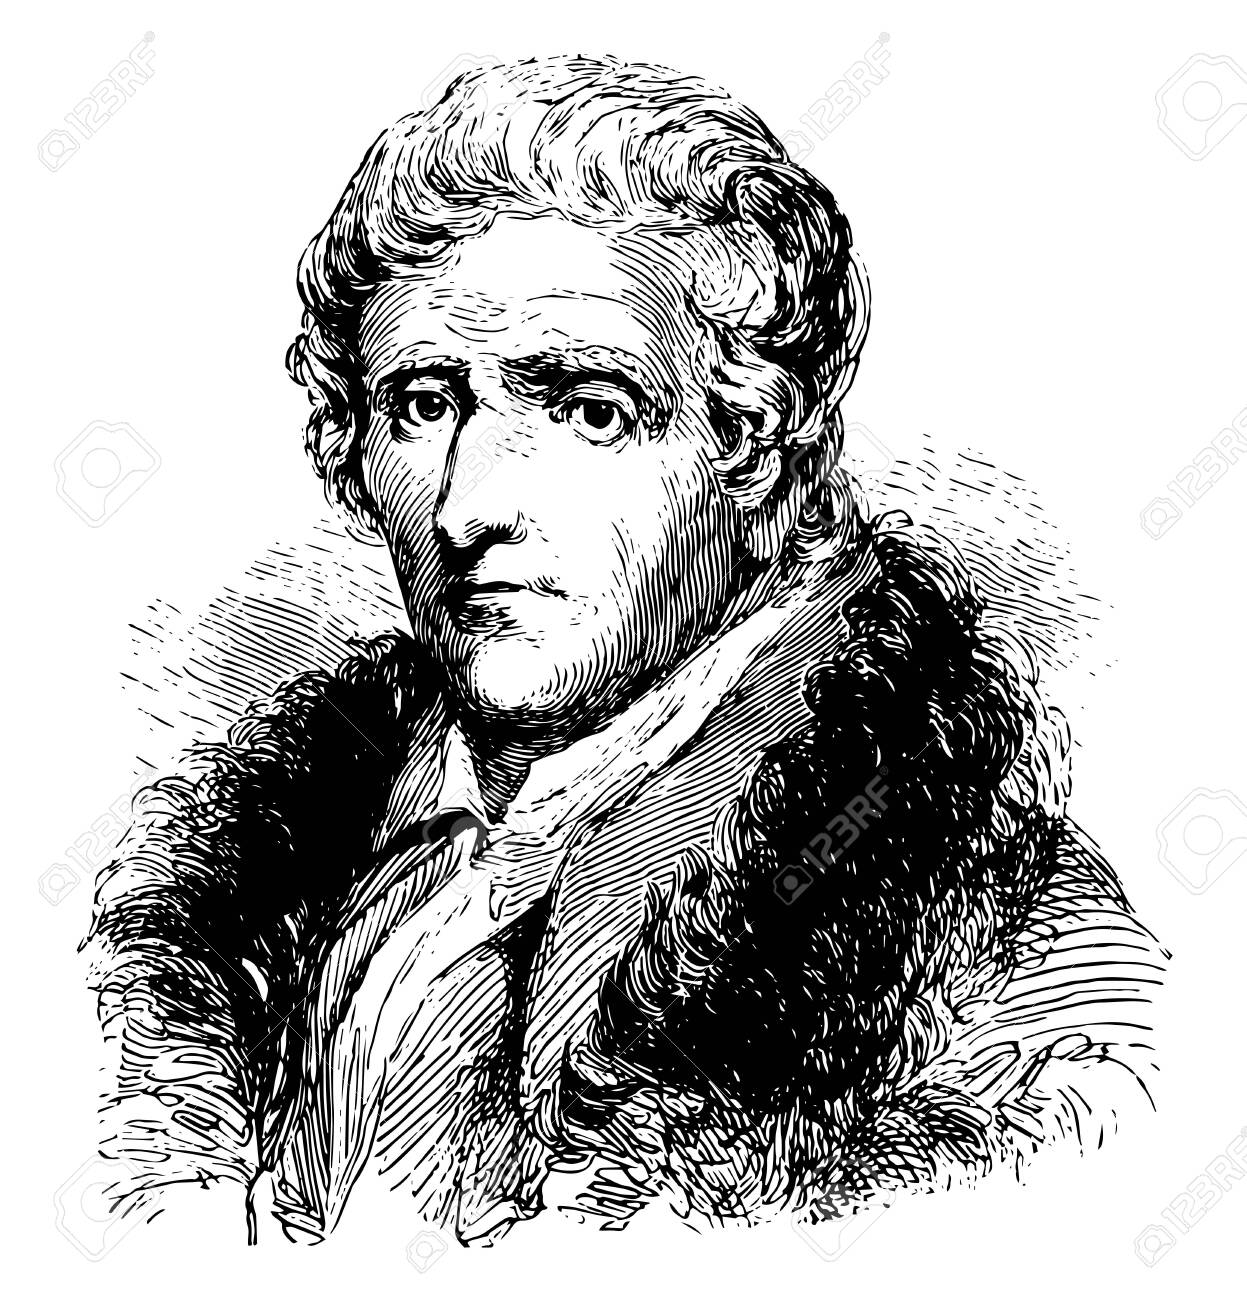 Daniel Boone 1734 to 1820 he was an American pioneer explorer frontiersman and one of the first folk heroes of the United States famous for his exploration and settlement vintage line drawing or engraving illustration - 133481205